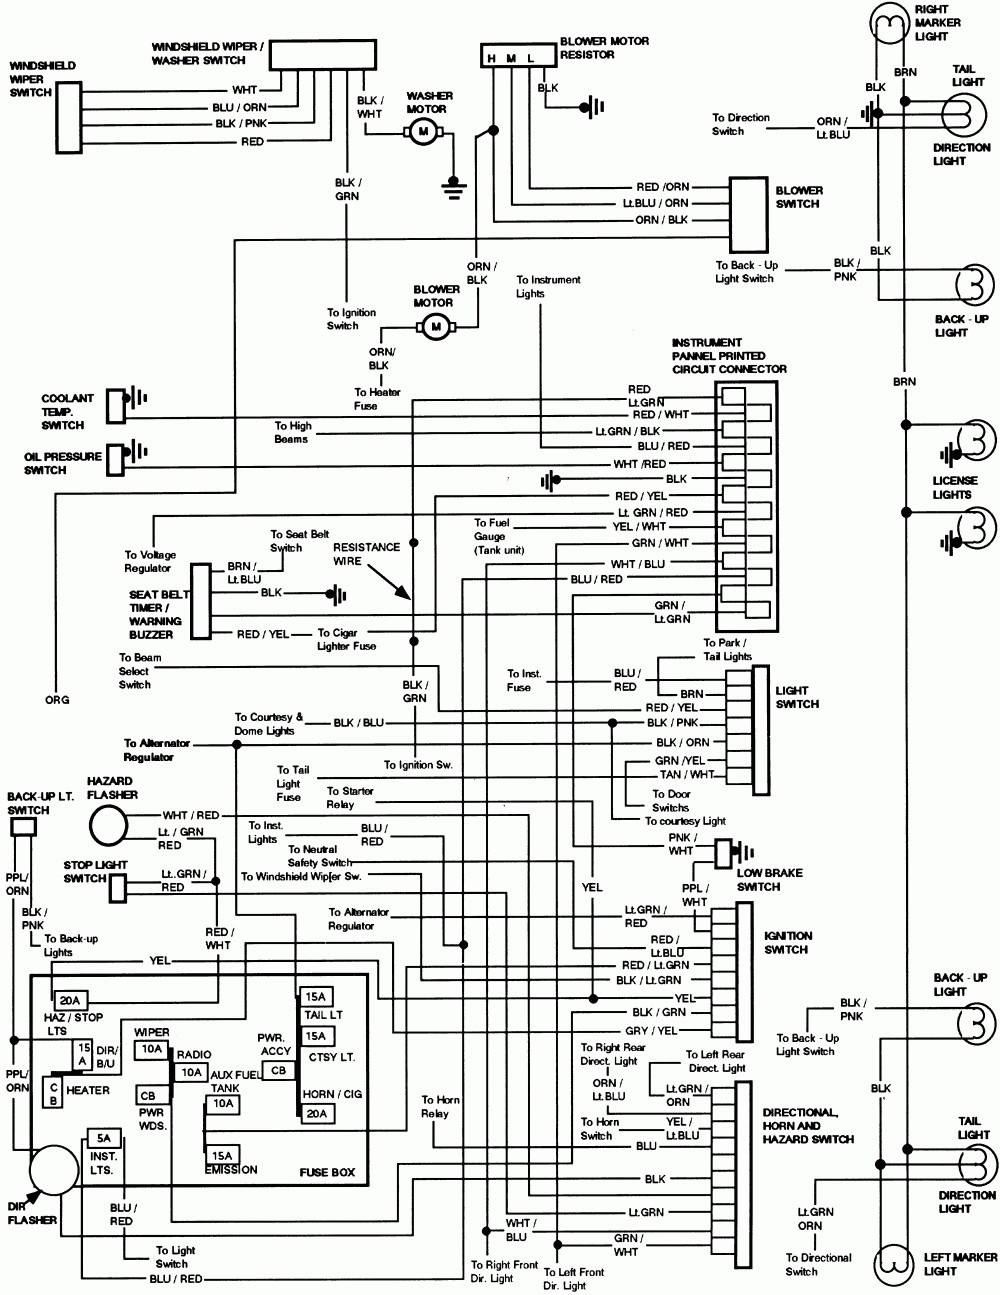 medium resolution of 1987 ford f 150 tfi wiring diagram wiring diagram host 1987 ford f150 wiring diagram 1987 ford f 150 wiring diagram